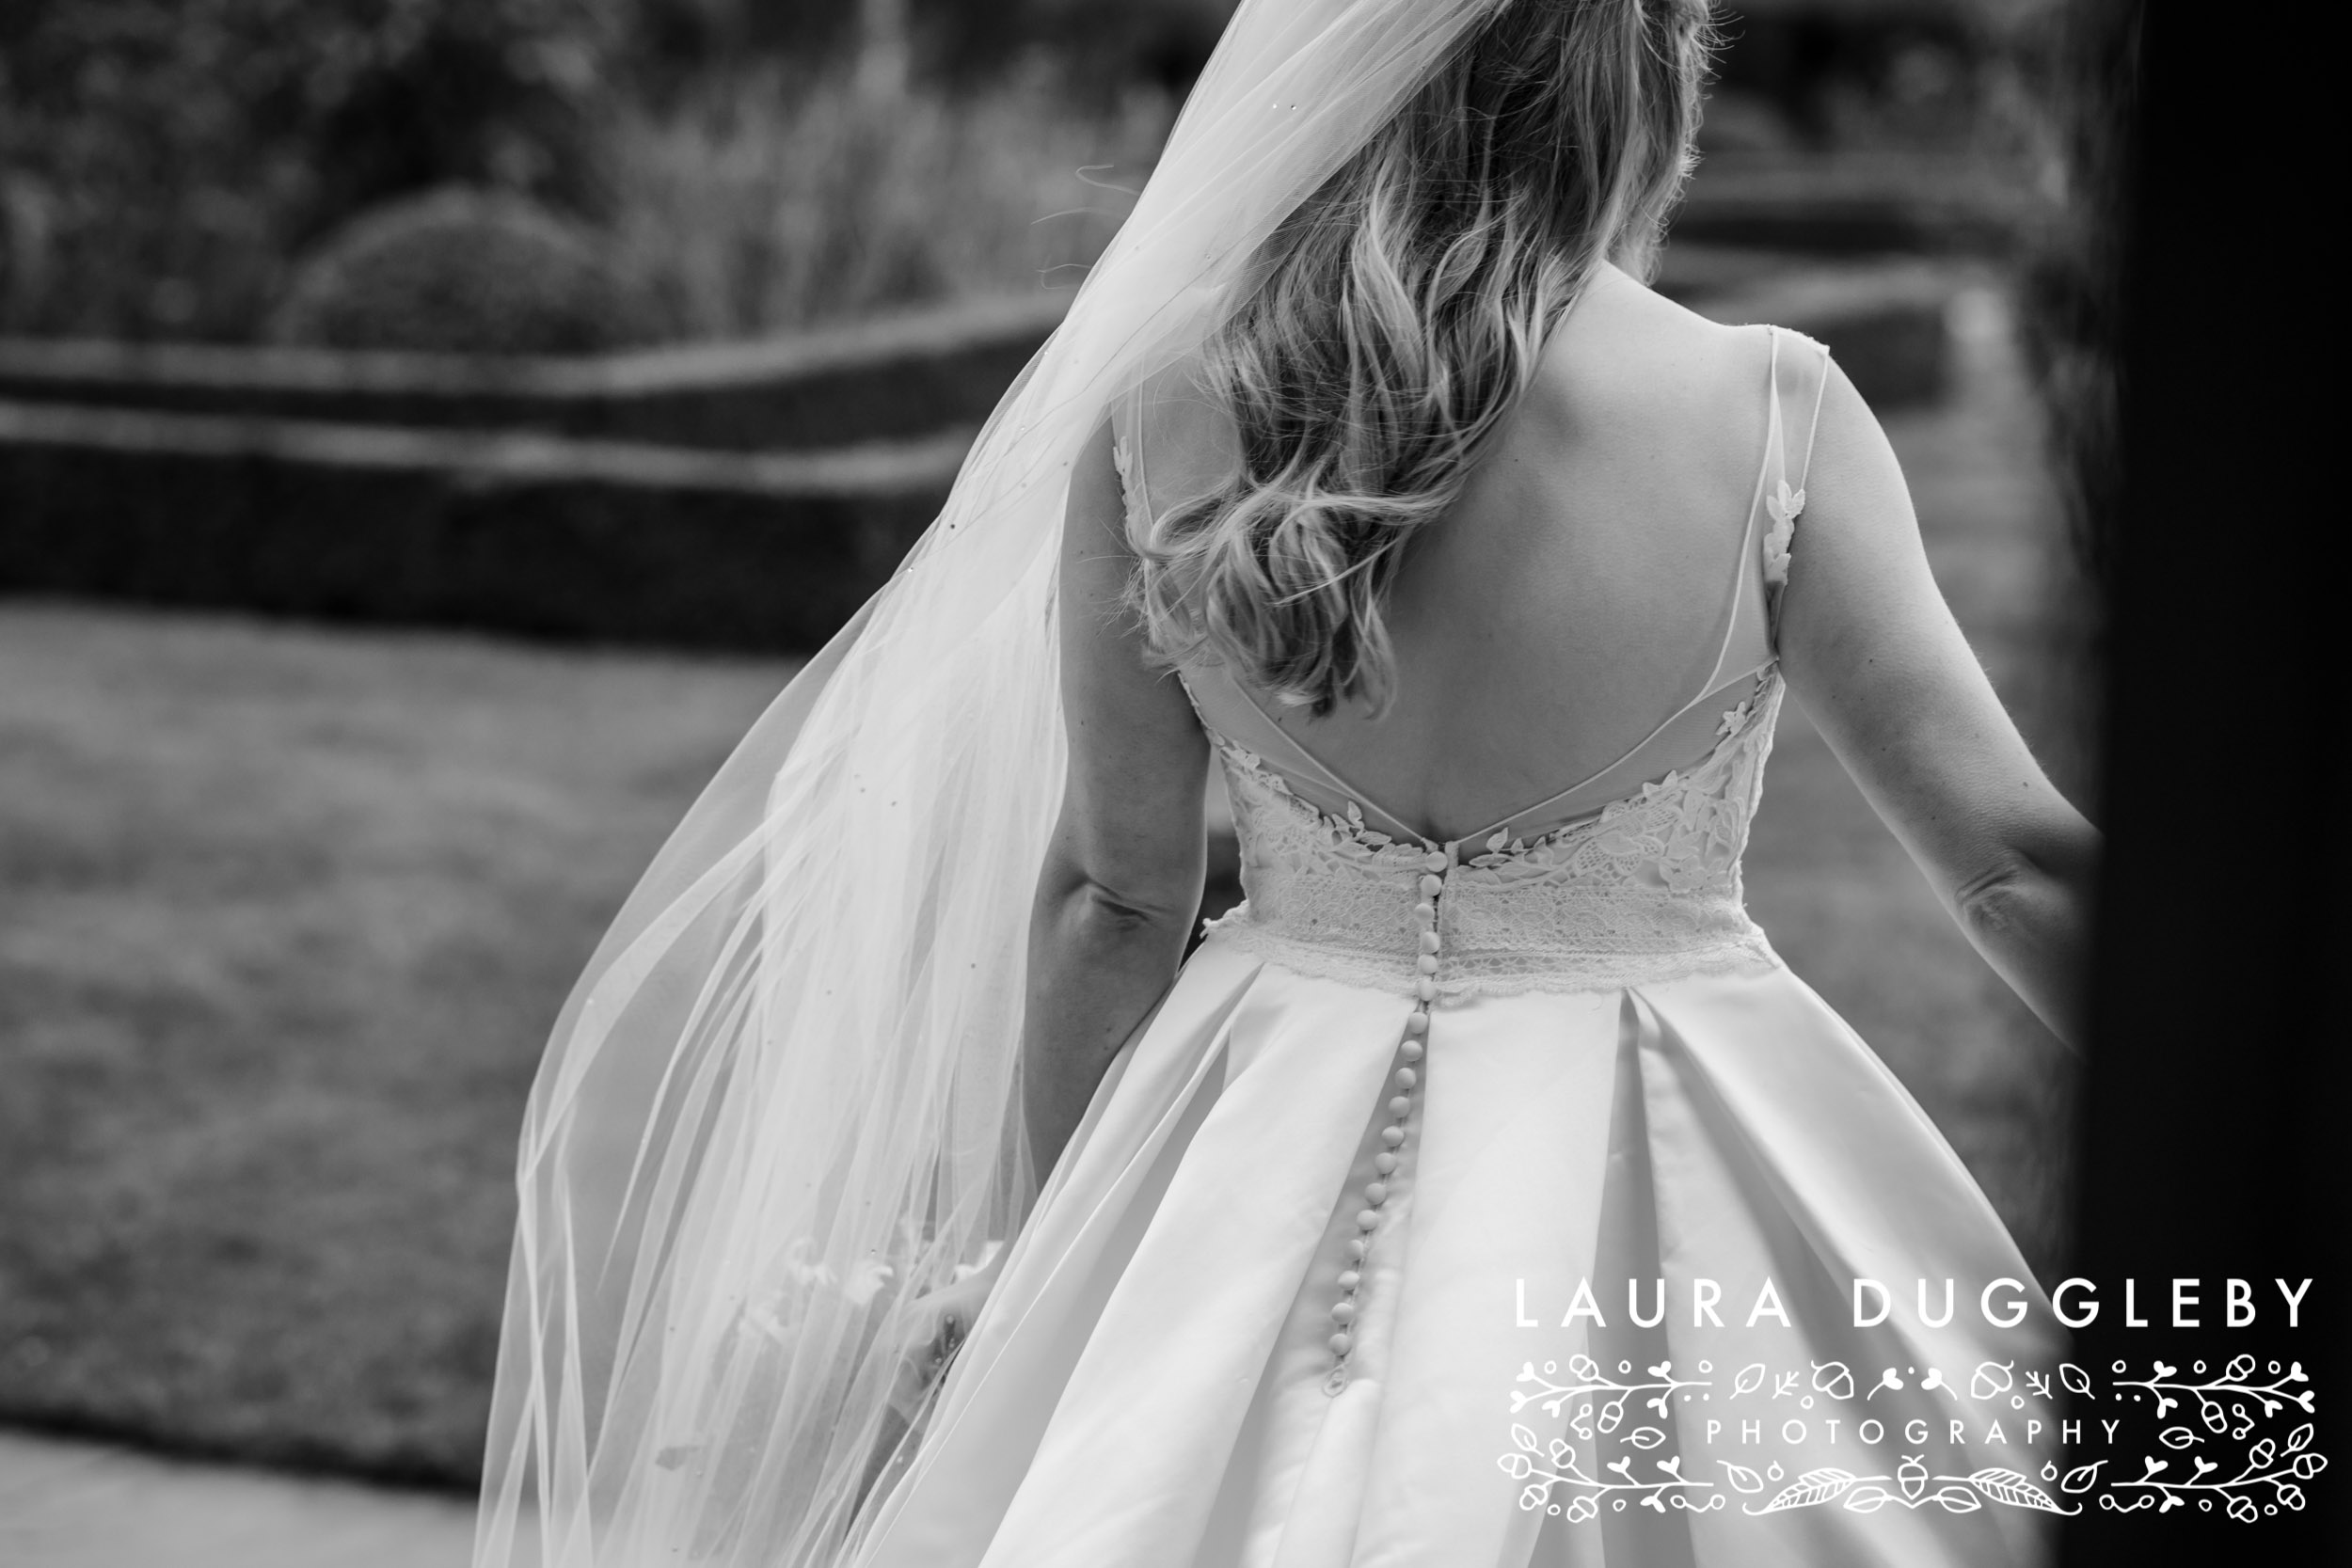 Laura Duggleby Stanley House Wedding Photographer-29.jpg